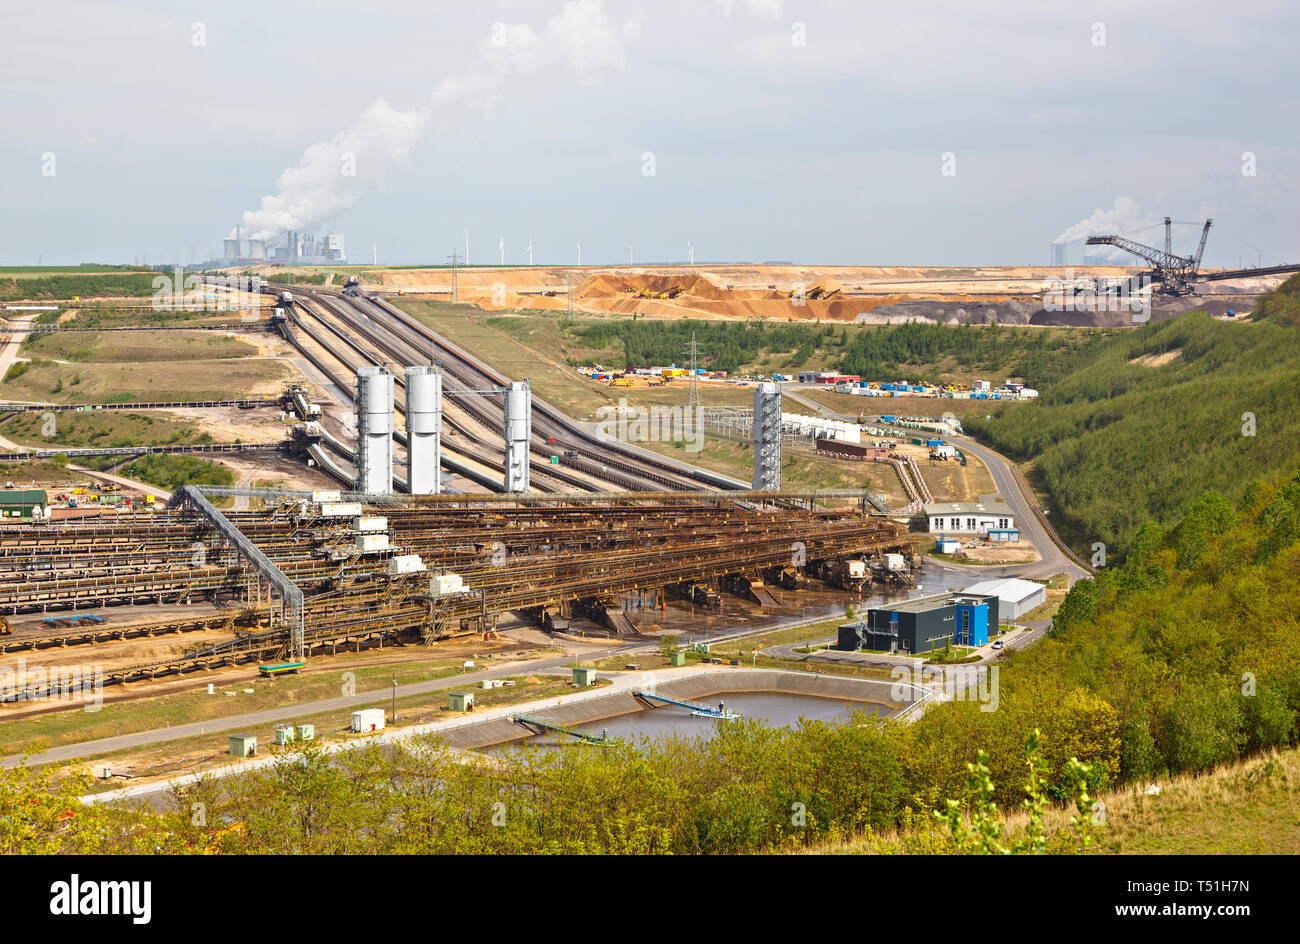 A lignite surface mine with conveyor belts leading to a distant coal power station. Stock Photo